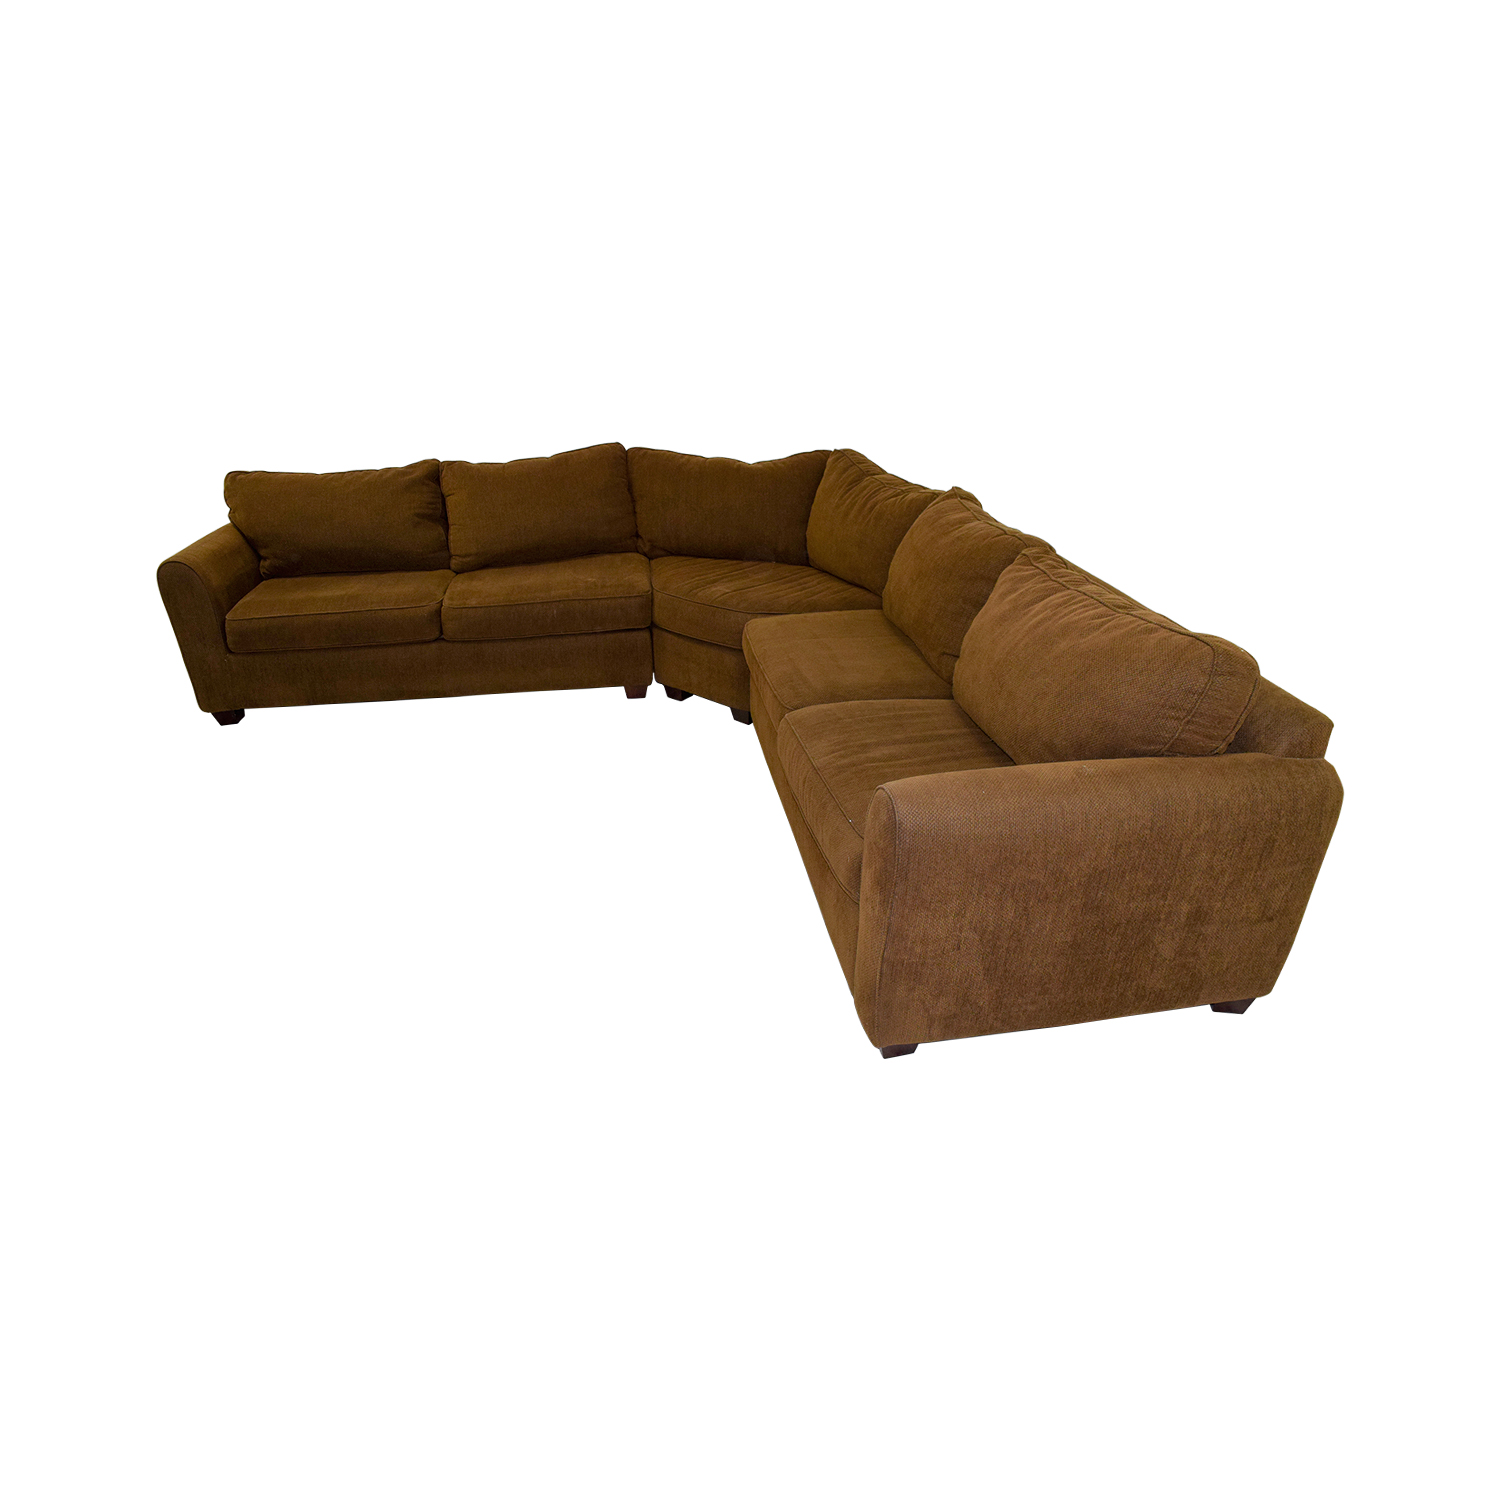 76 off brown l shaped sectional sofas for 76 sectional sofa